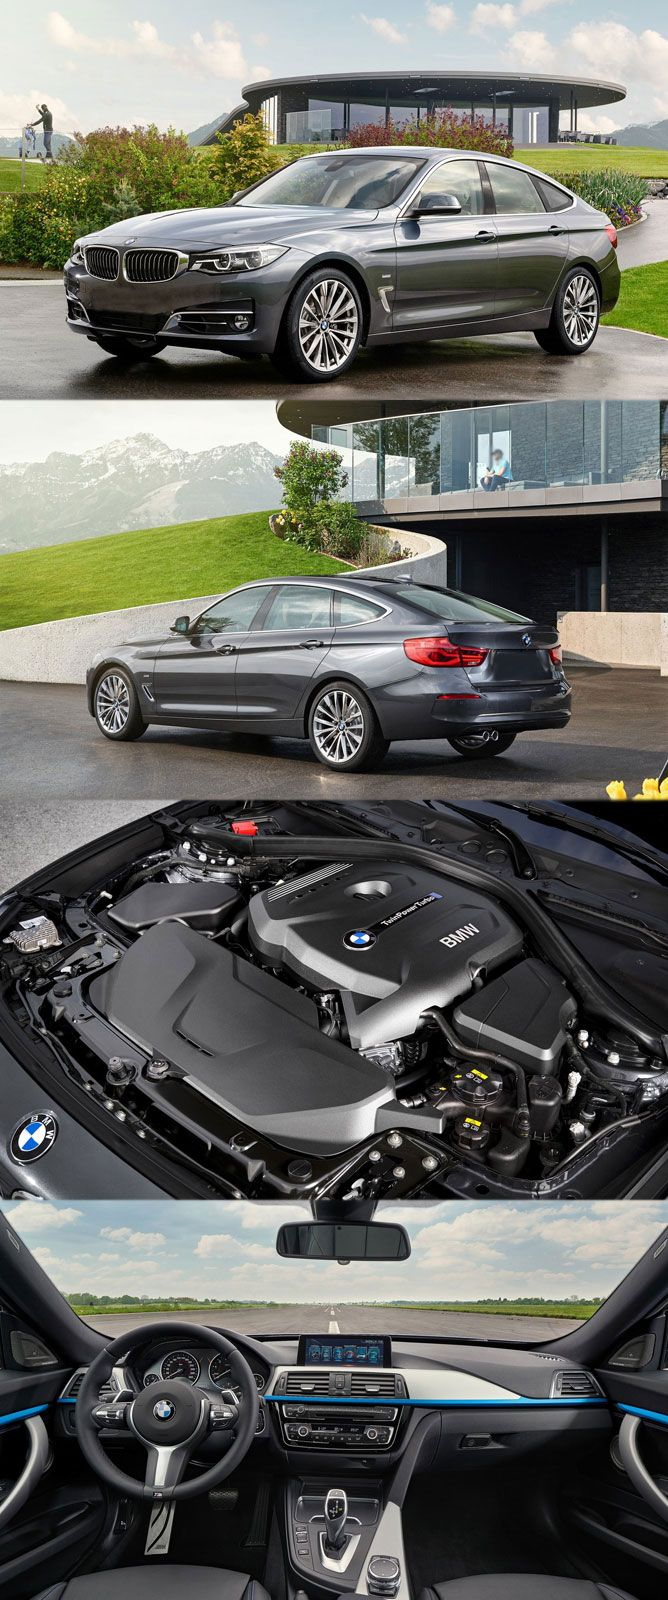 Transformation of the new bmw 3 series gt engine get more details at http